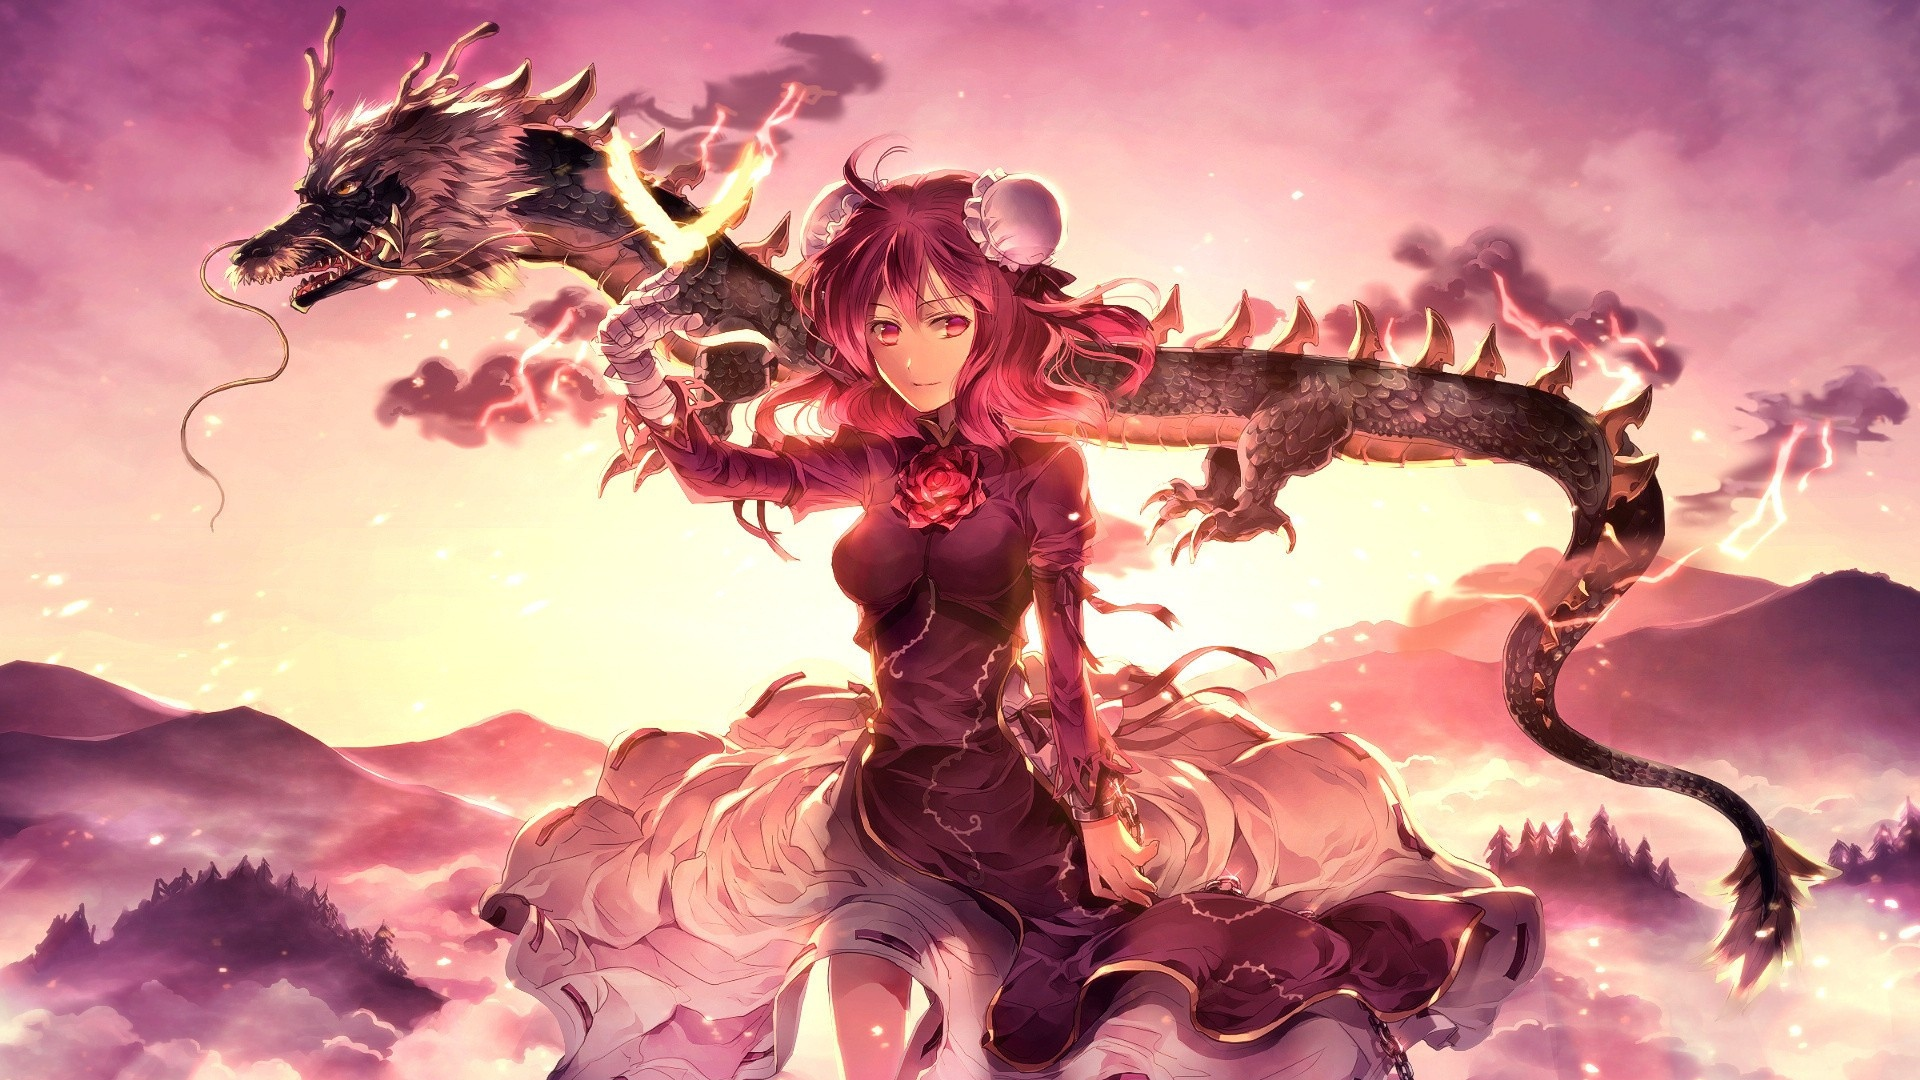 Red Dragon Girl Wallpaper Old Anime Wallpaper S Full Hd 18 08 14 File Indie Db